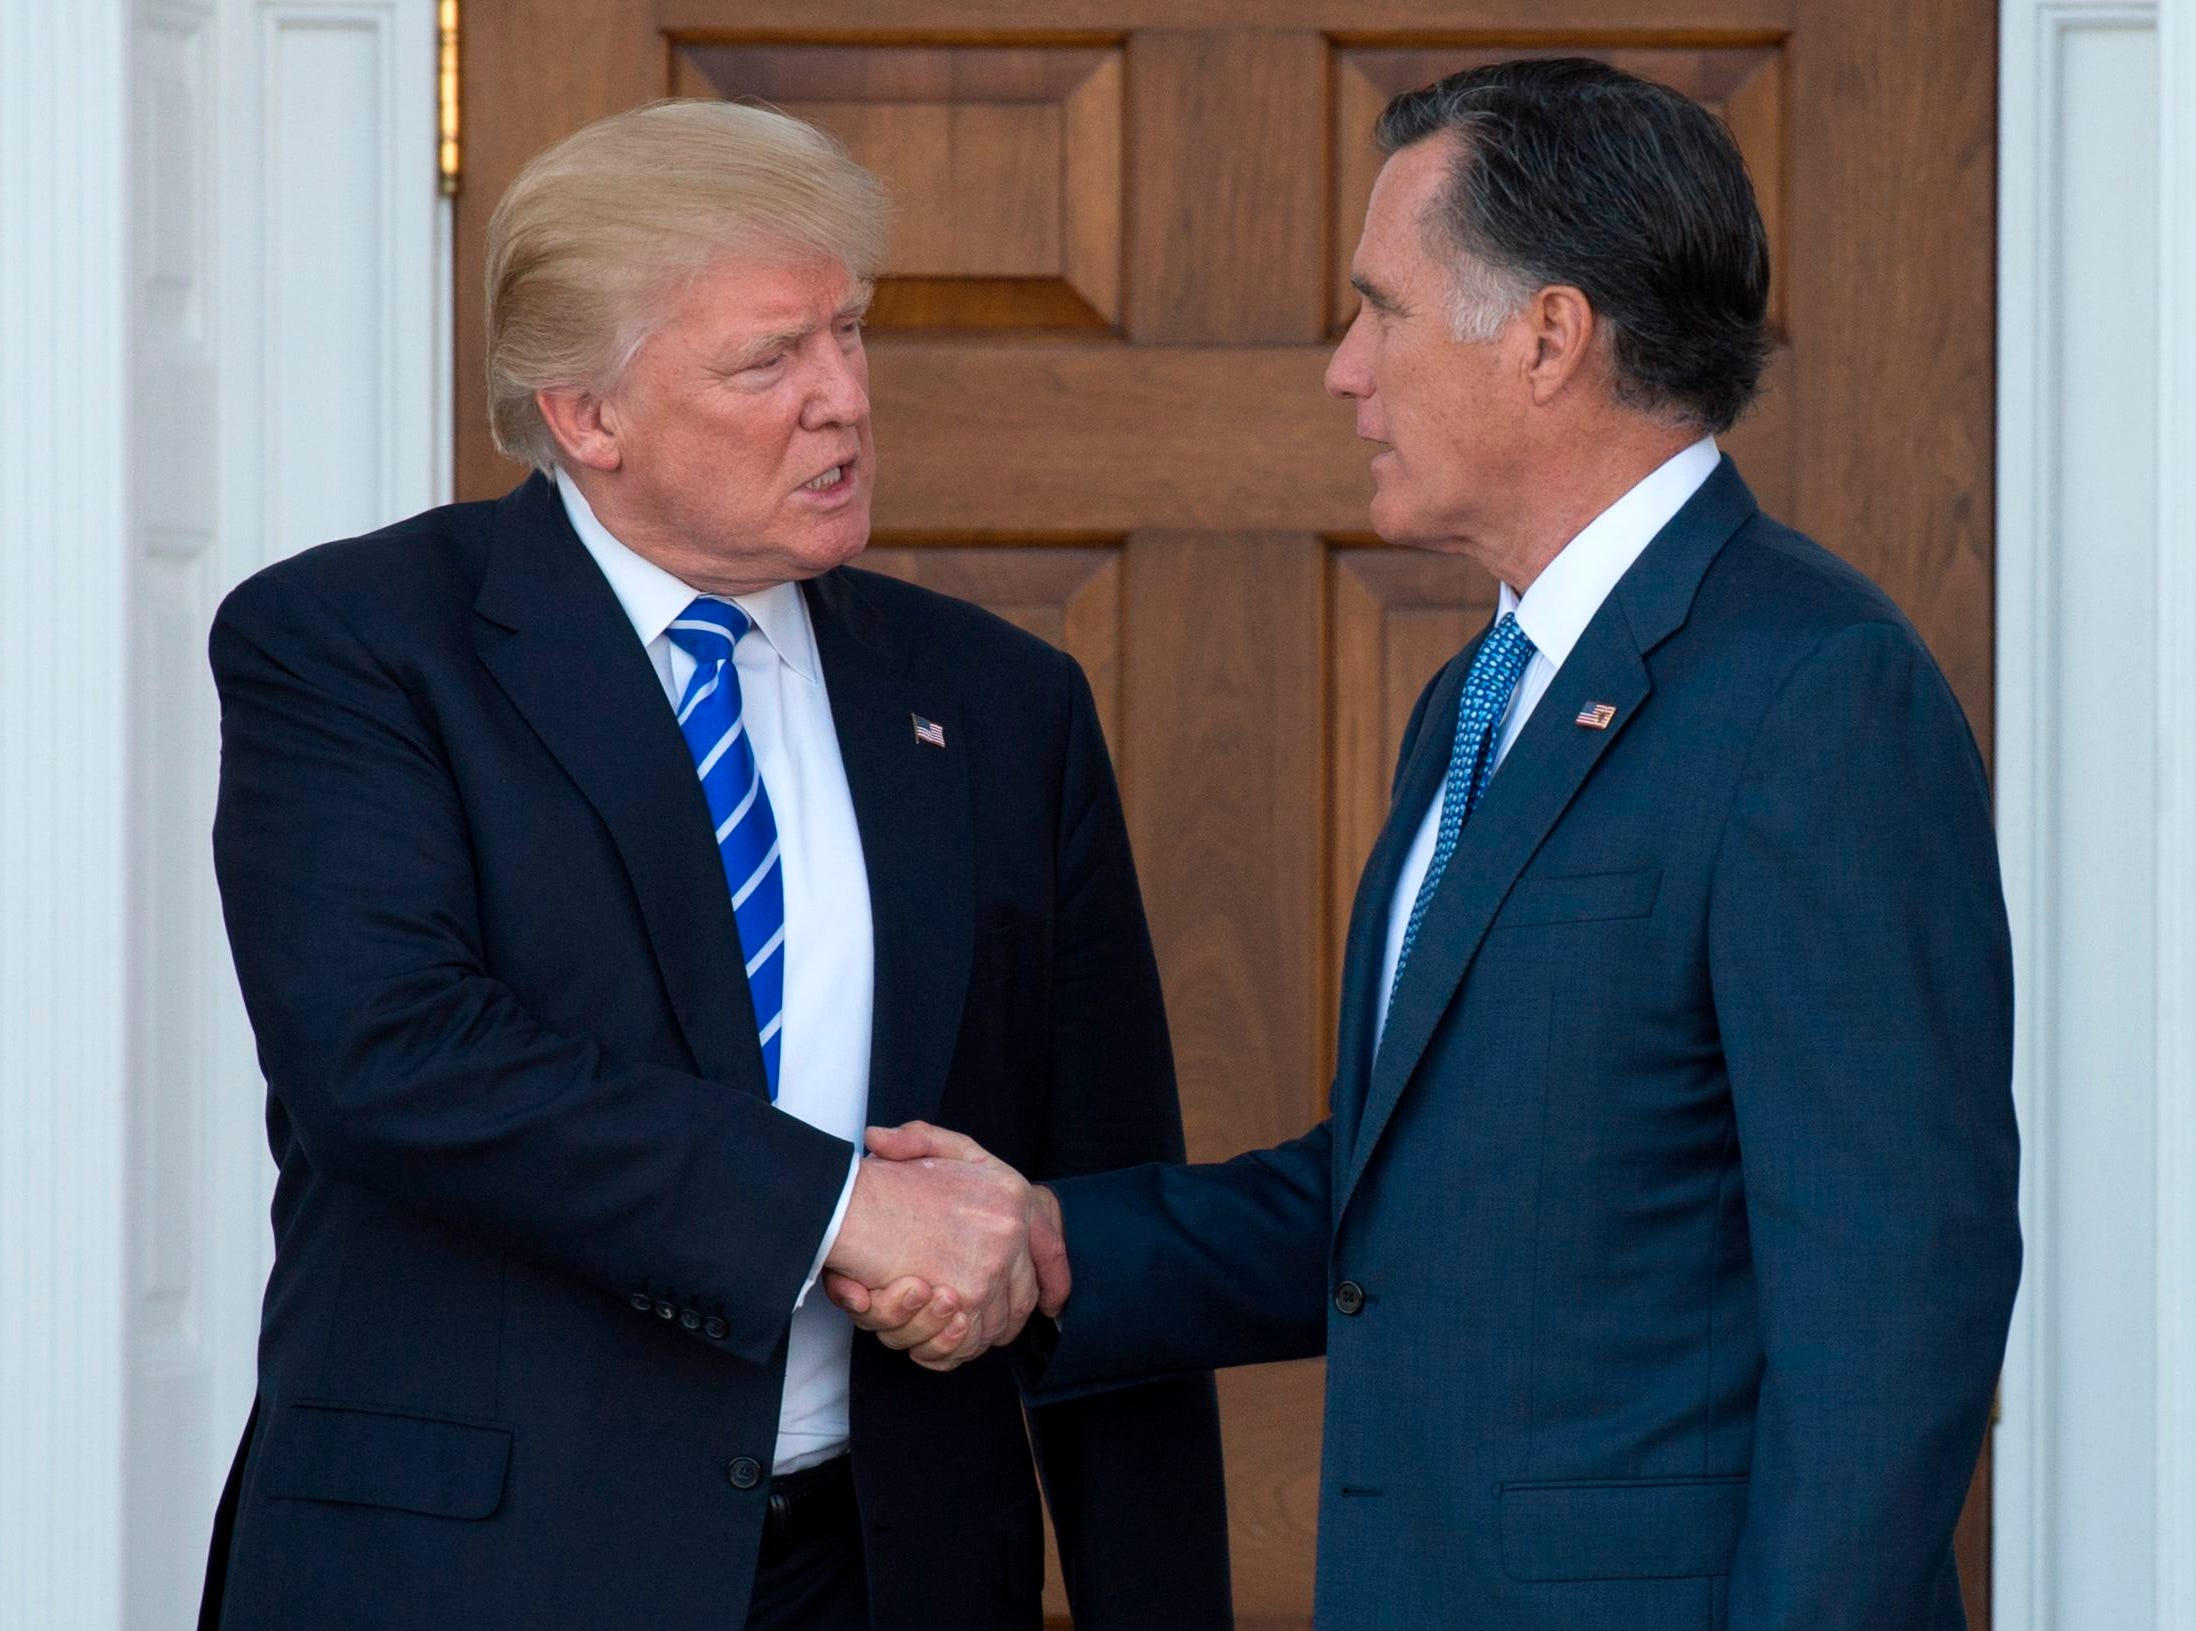 President Trump fires back at Mitt Romney after critical op-ed: 'I won big and he didn't'